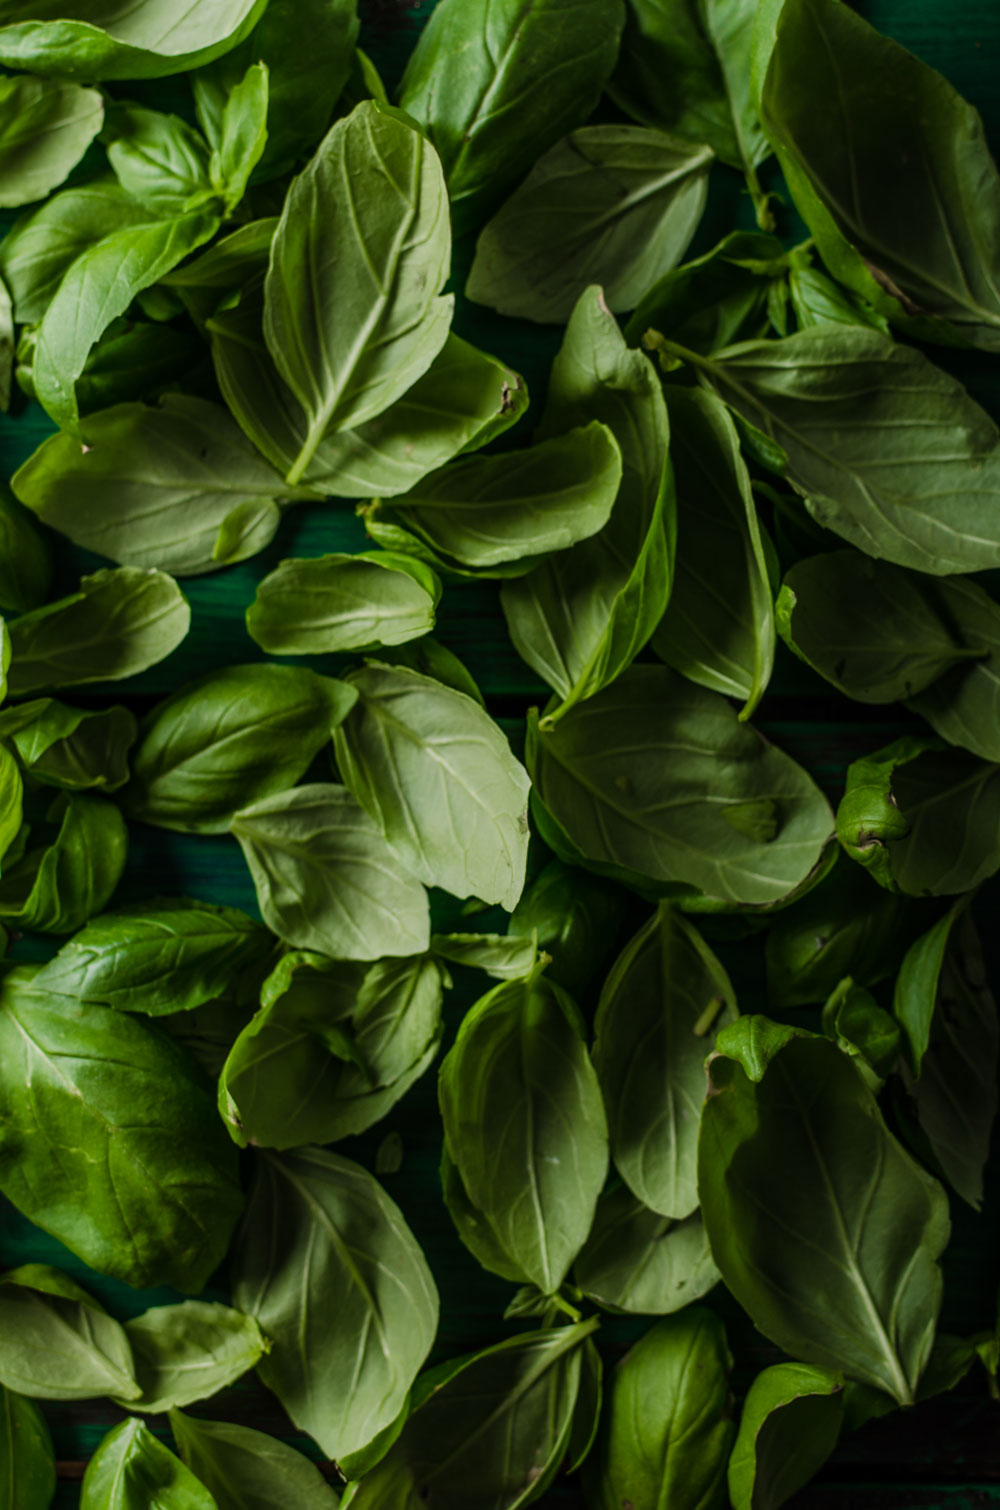 Carefully pruned and cultivated over several weeks, our basil seedlings are constantly monitored to produce a floral, bright basil with notes of clove and anise.